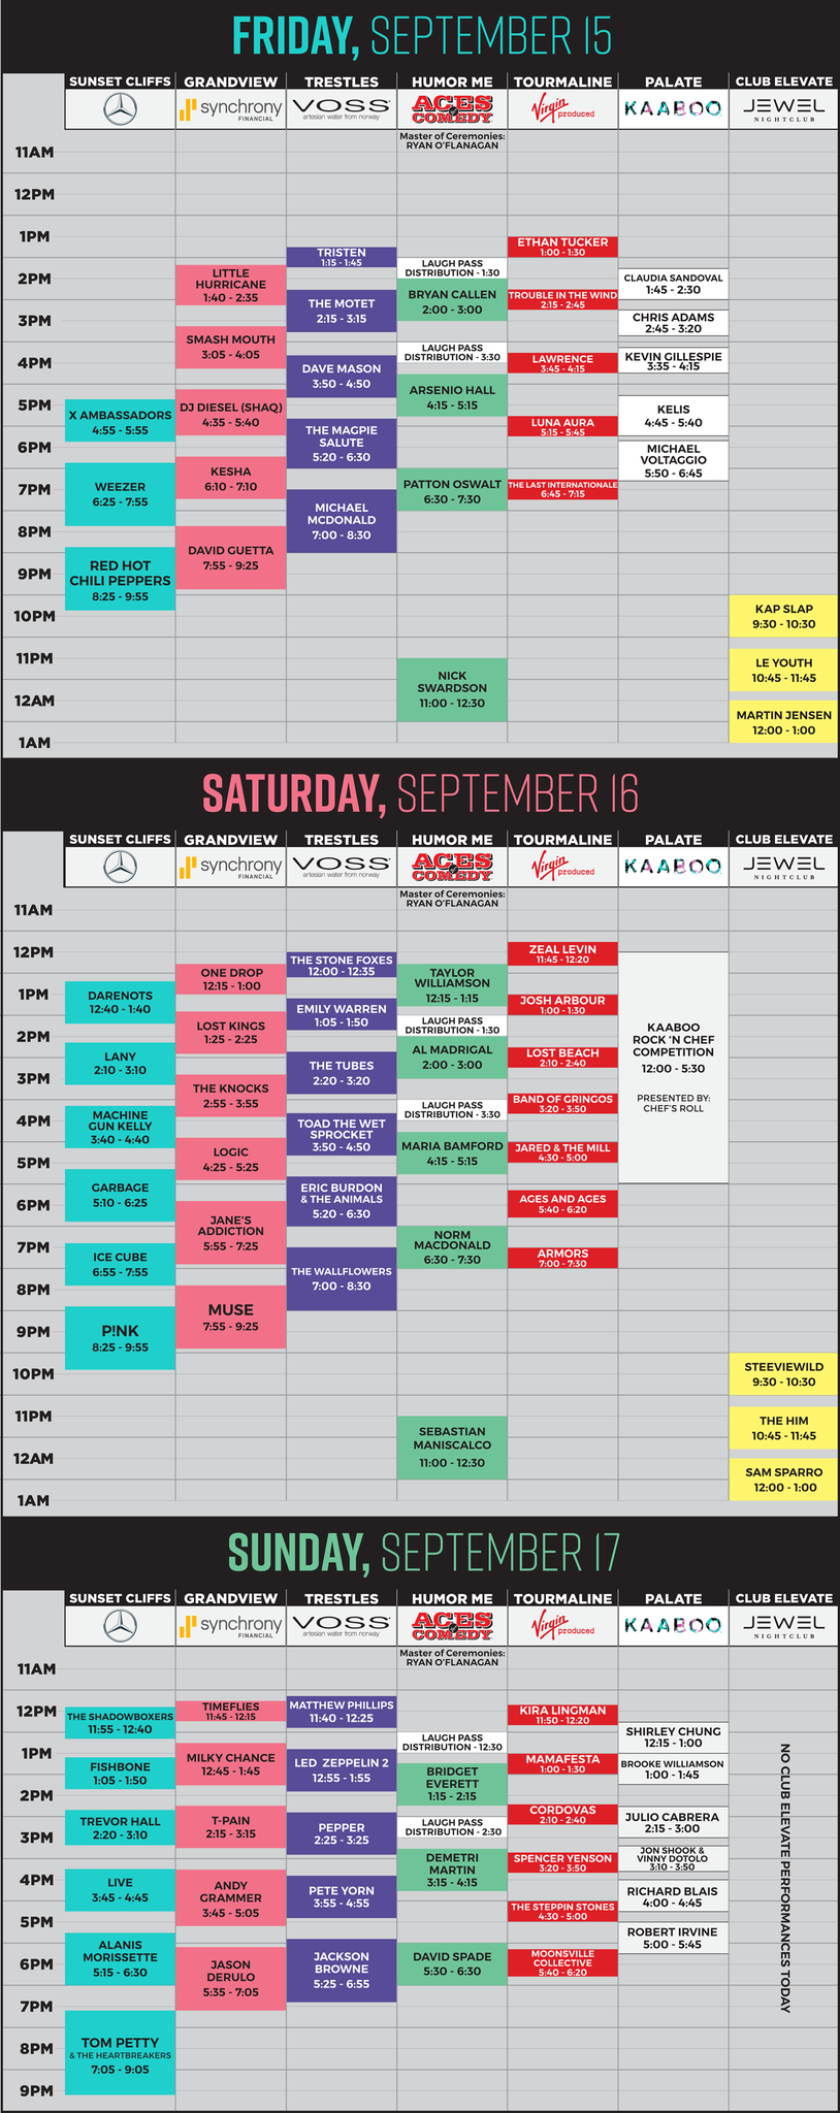 pac-full-grid-all-days-stacked